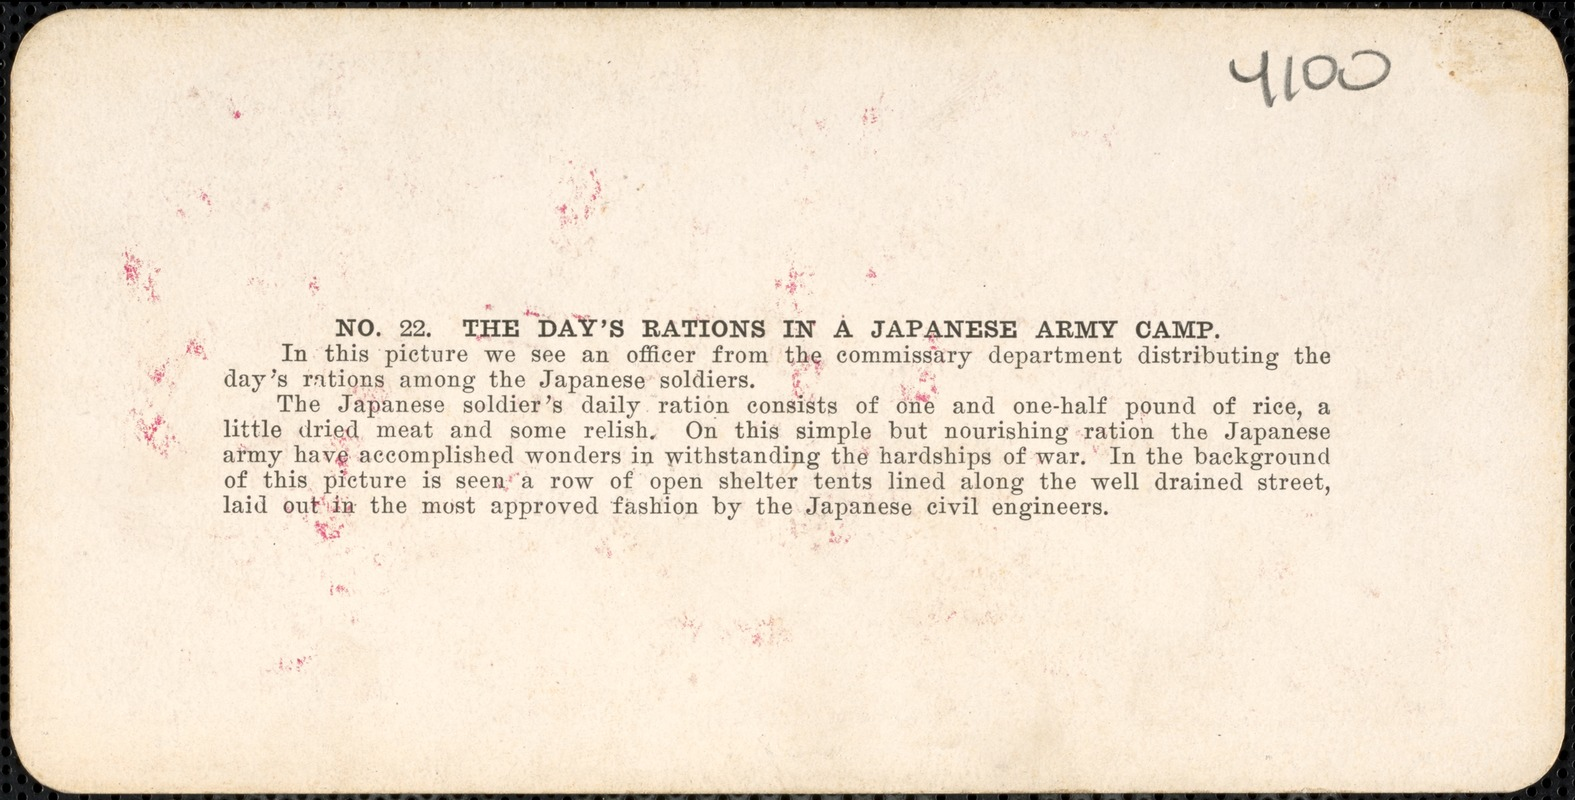 The day's rations in a Japanese army camp